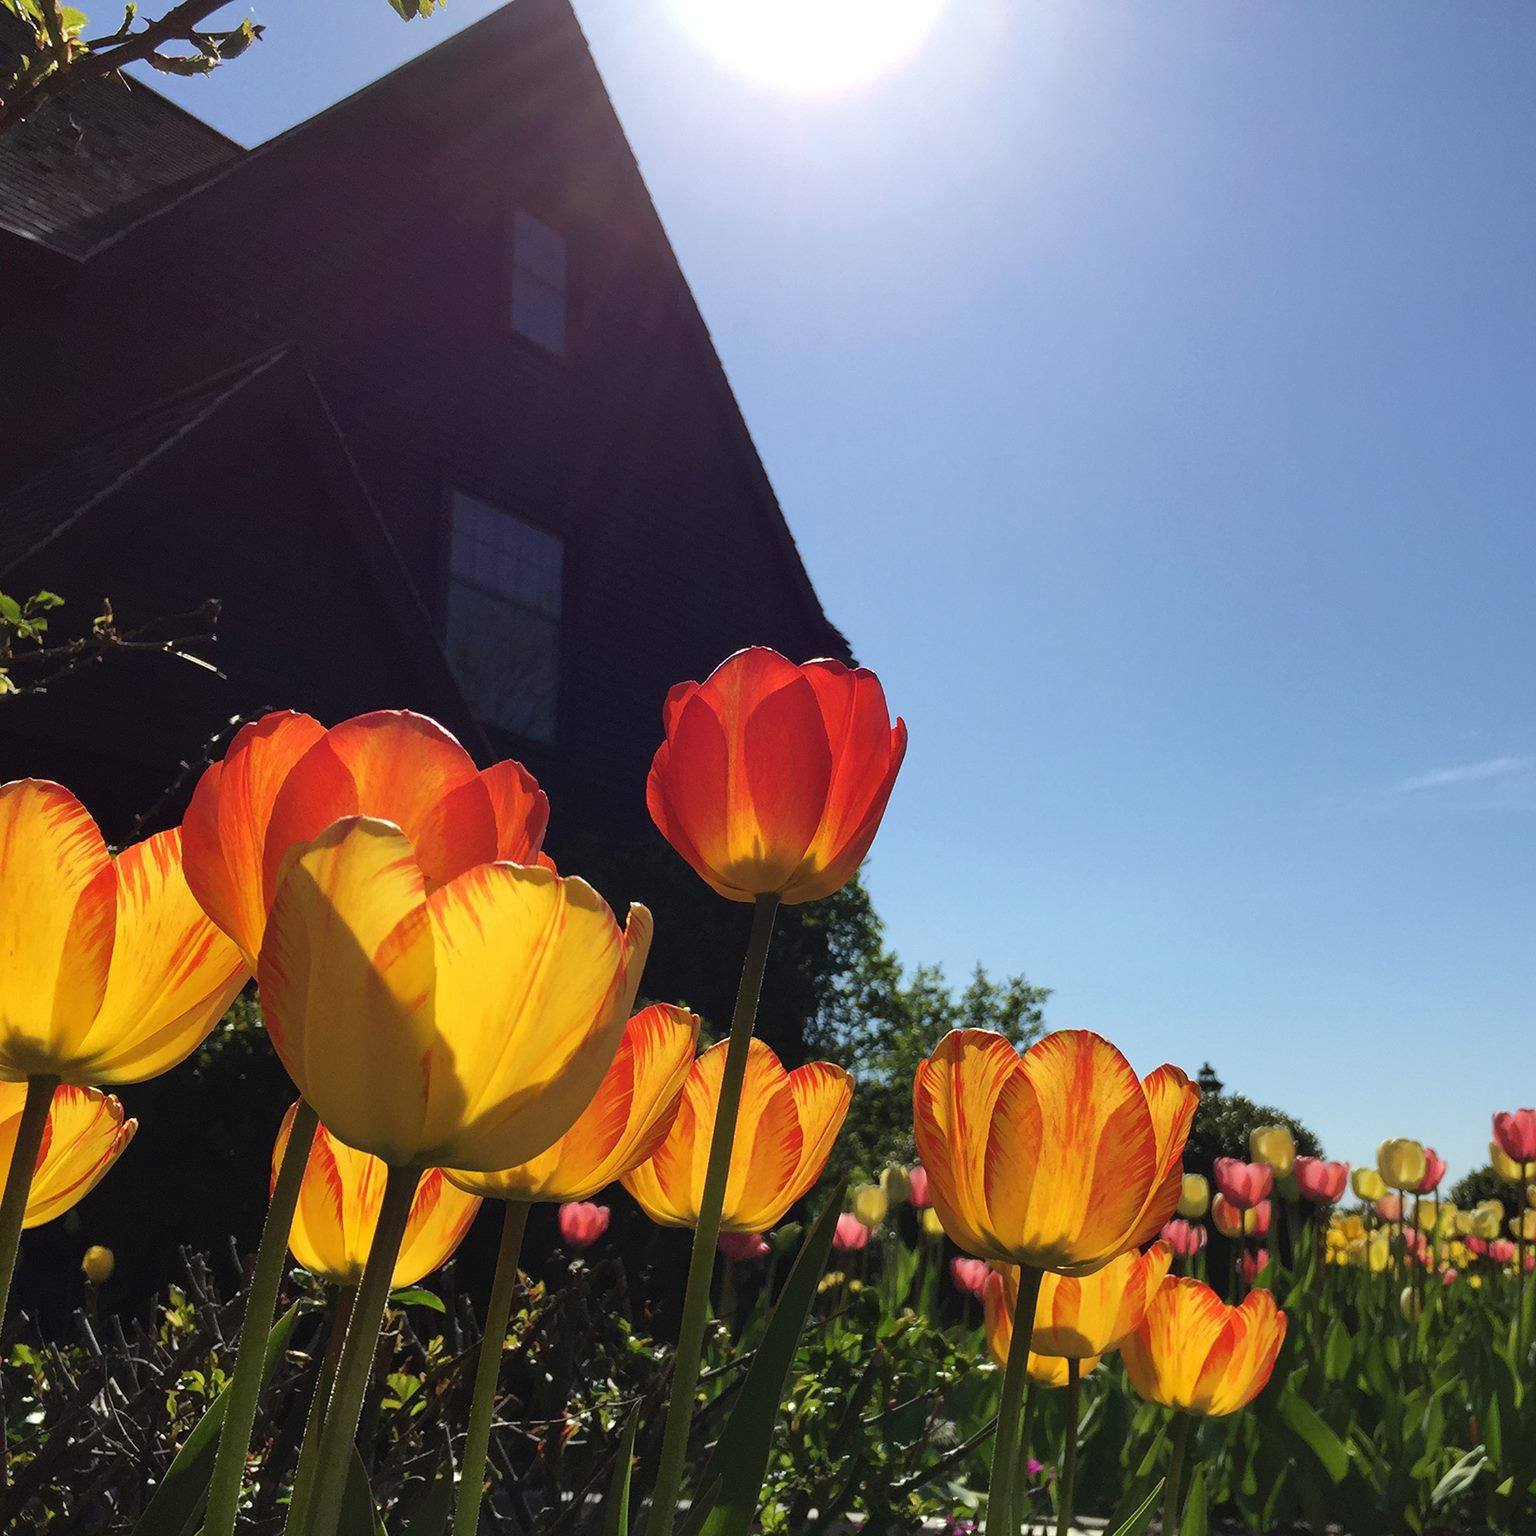 Visit the House of Seven Gables by renting a charter bus.